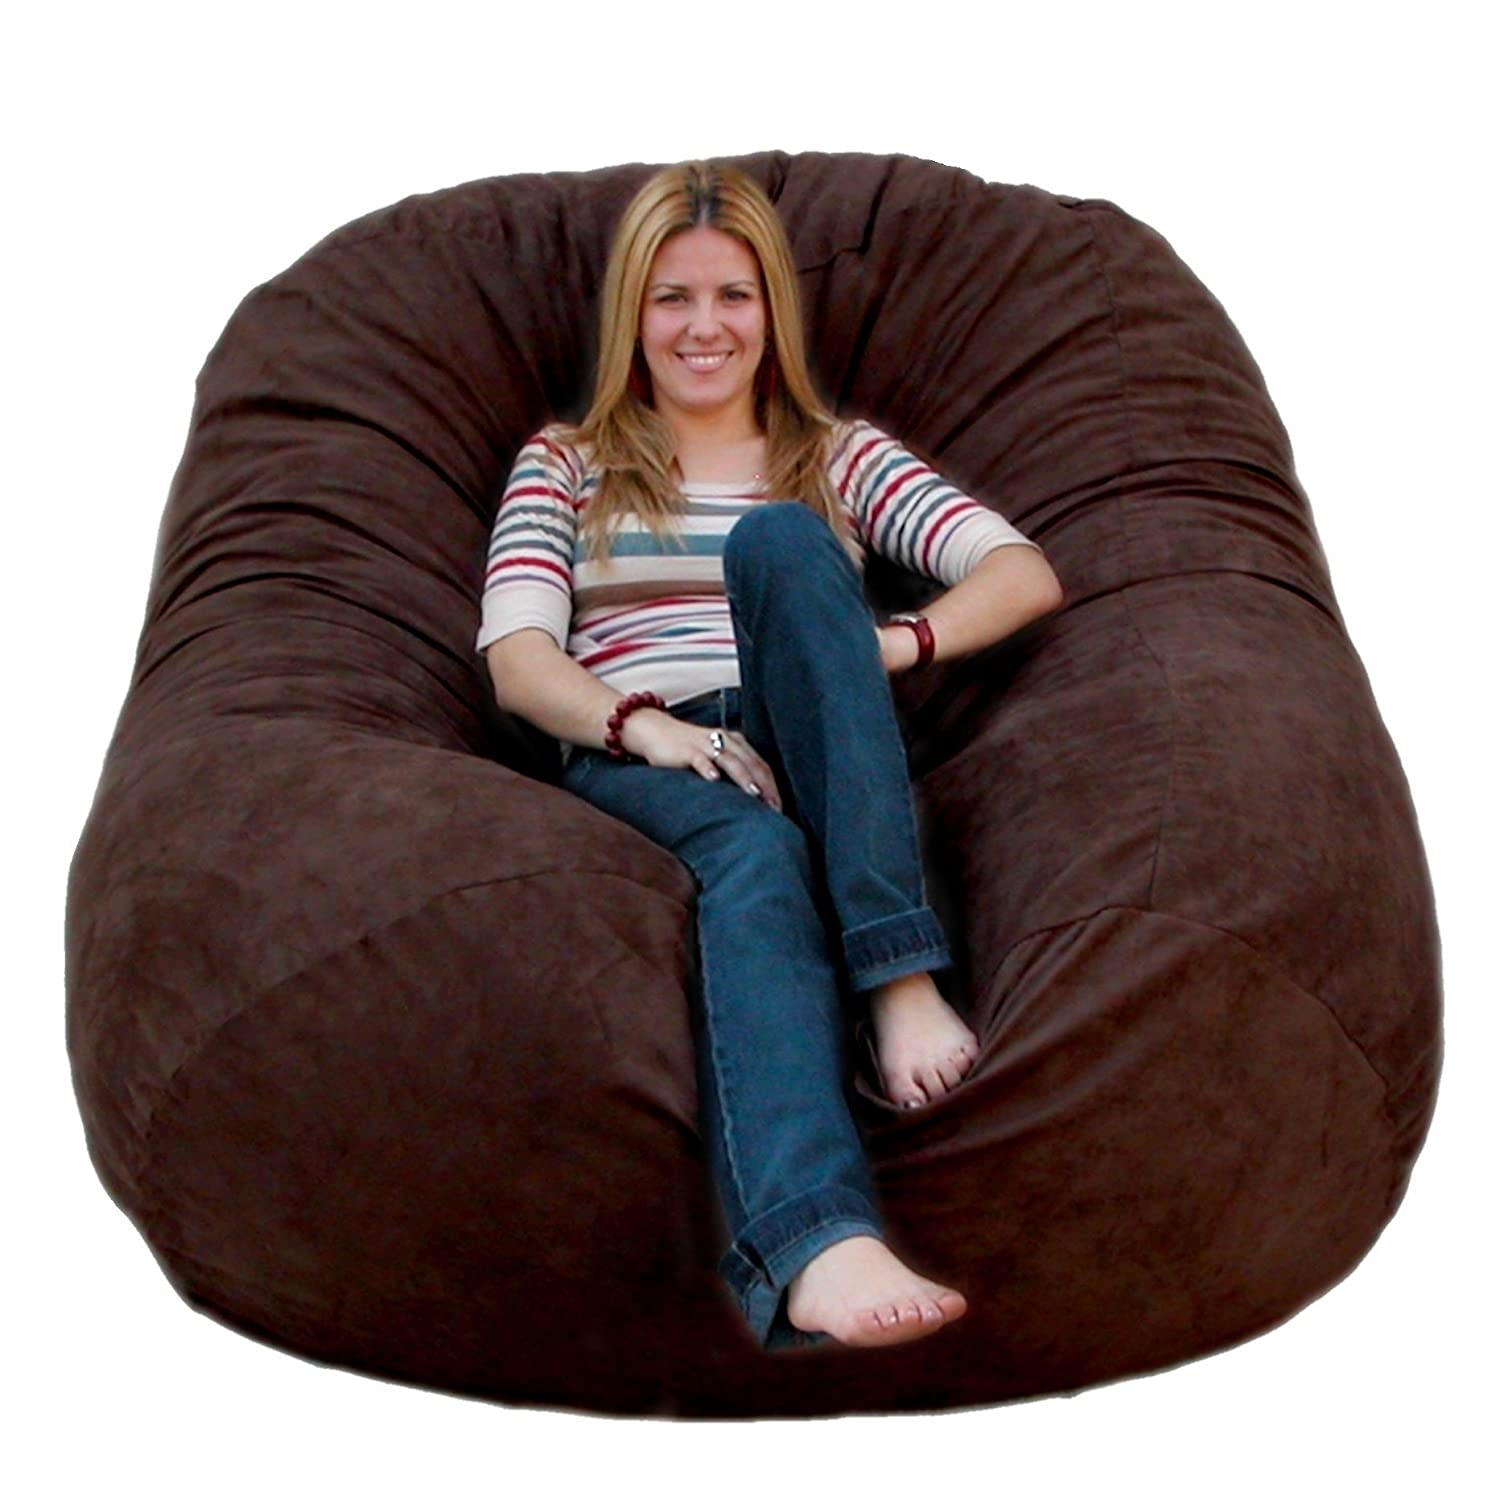 Merveilleux Amazon.com: Cozy Sack 6 Feet Bean Bag Chair, Large, Chocolate: Kitchen U0026  Dining